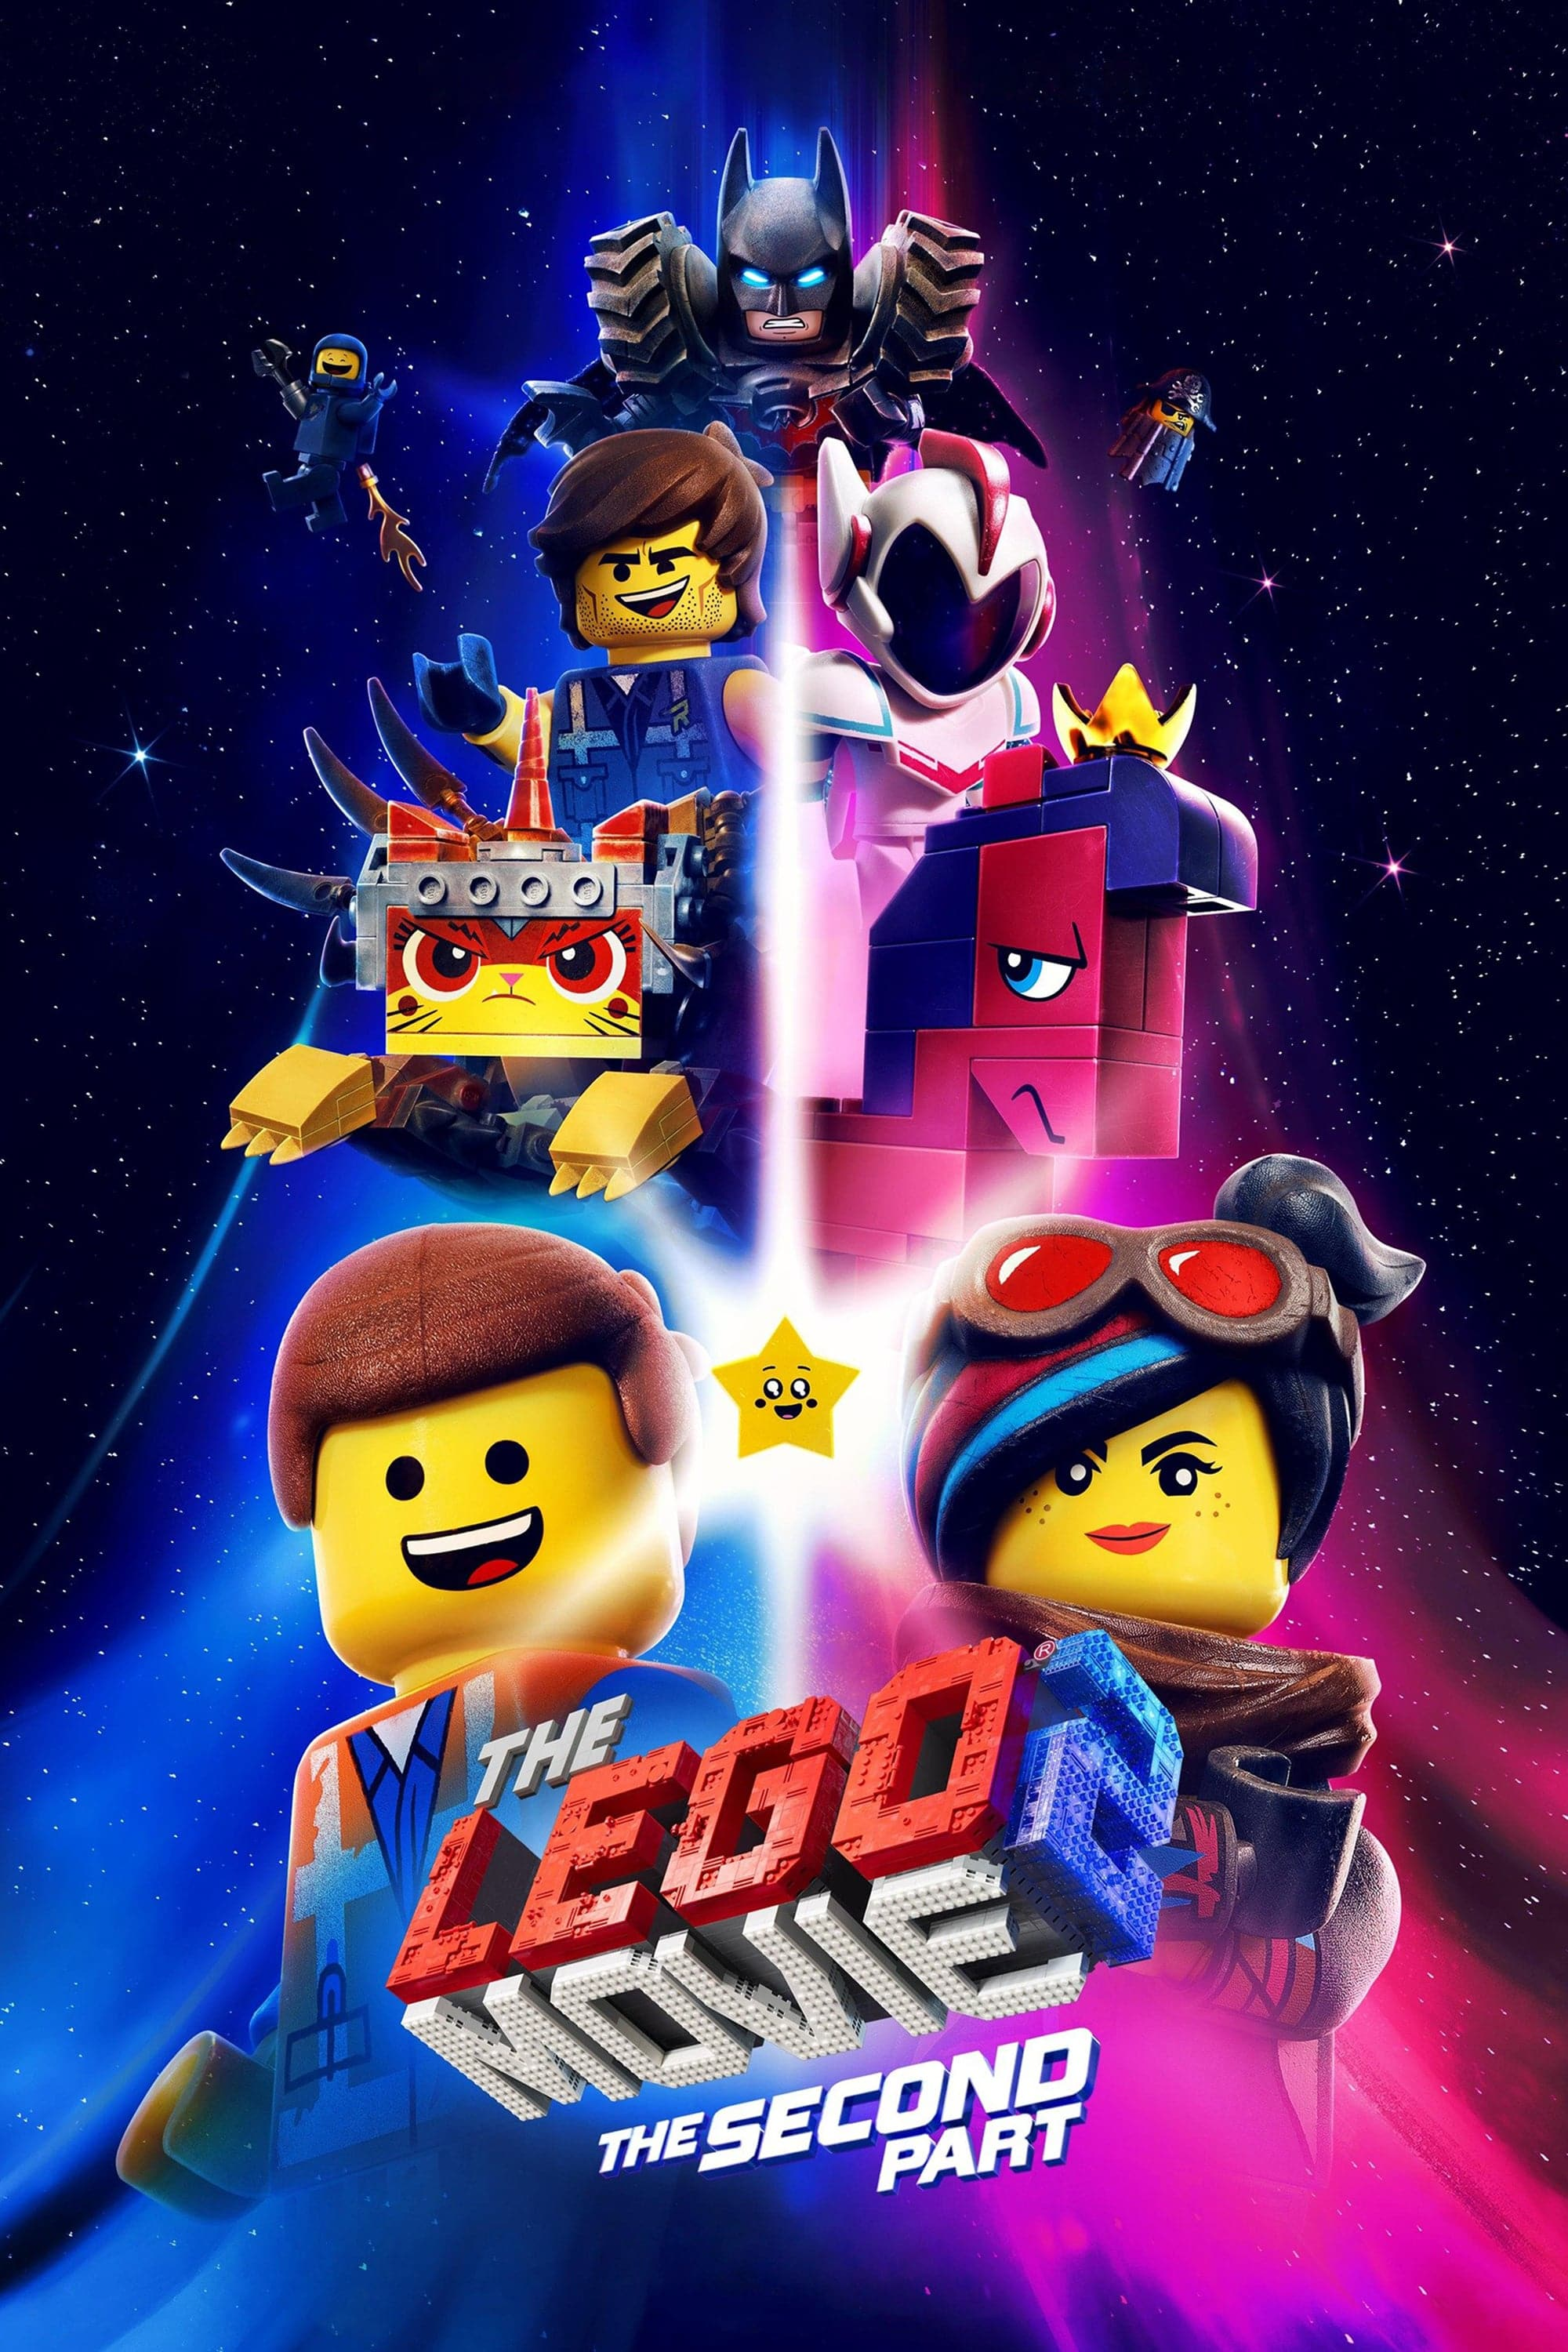 دانلود فیلم The Lego Movie 2: The Second Part 2019